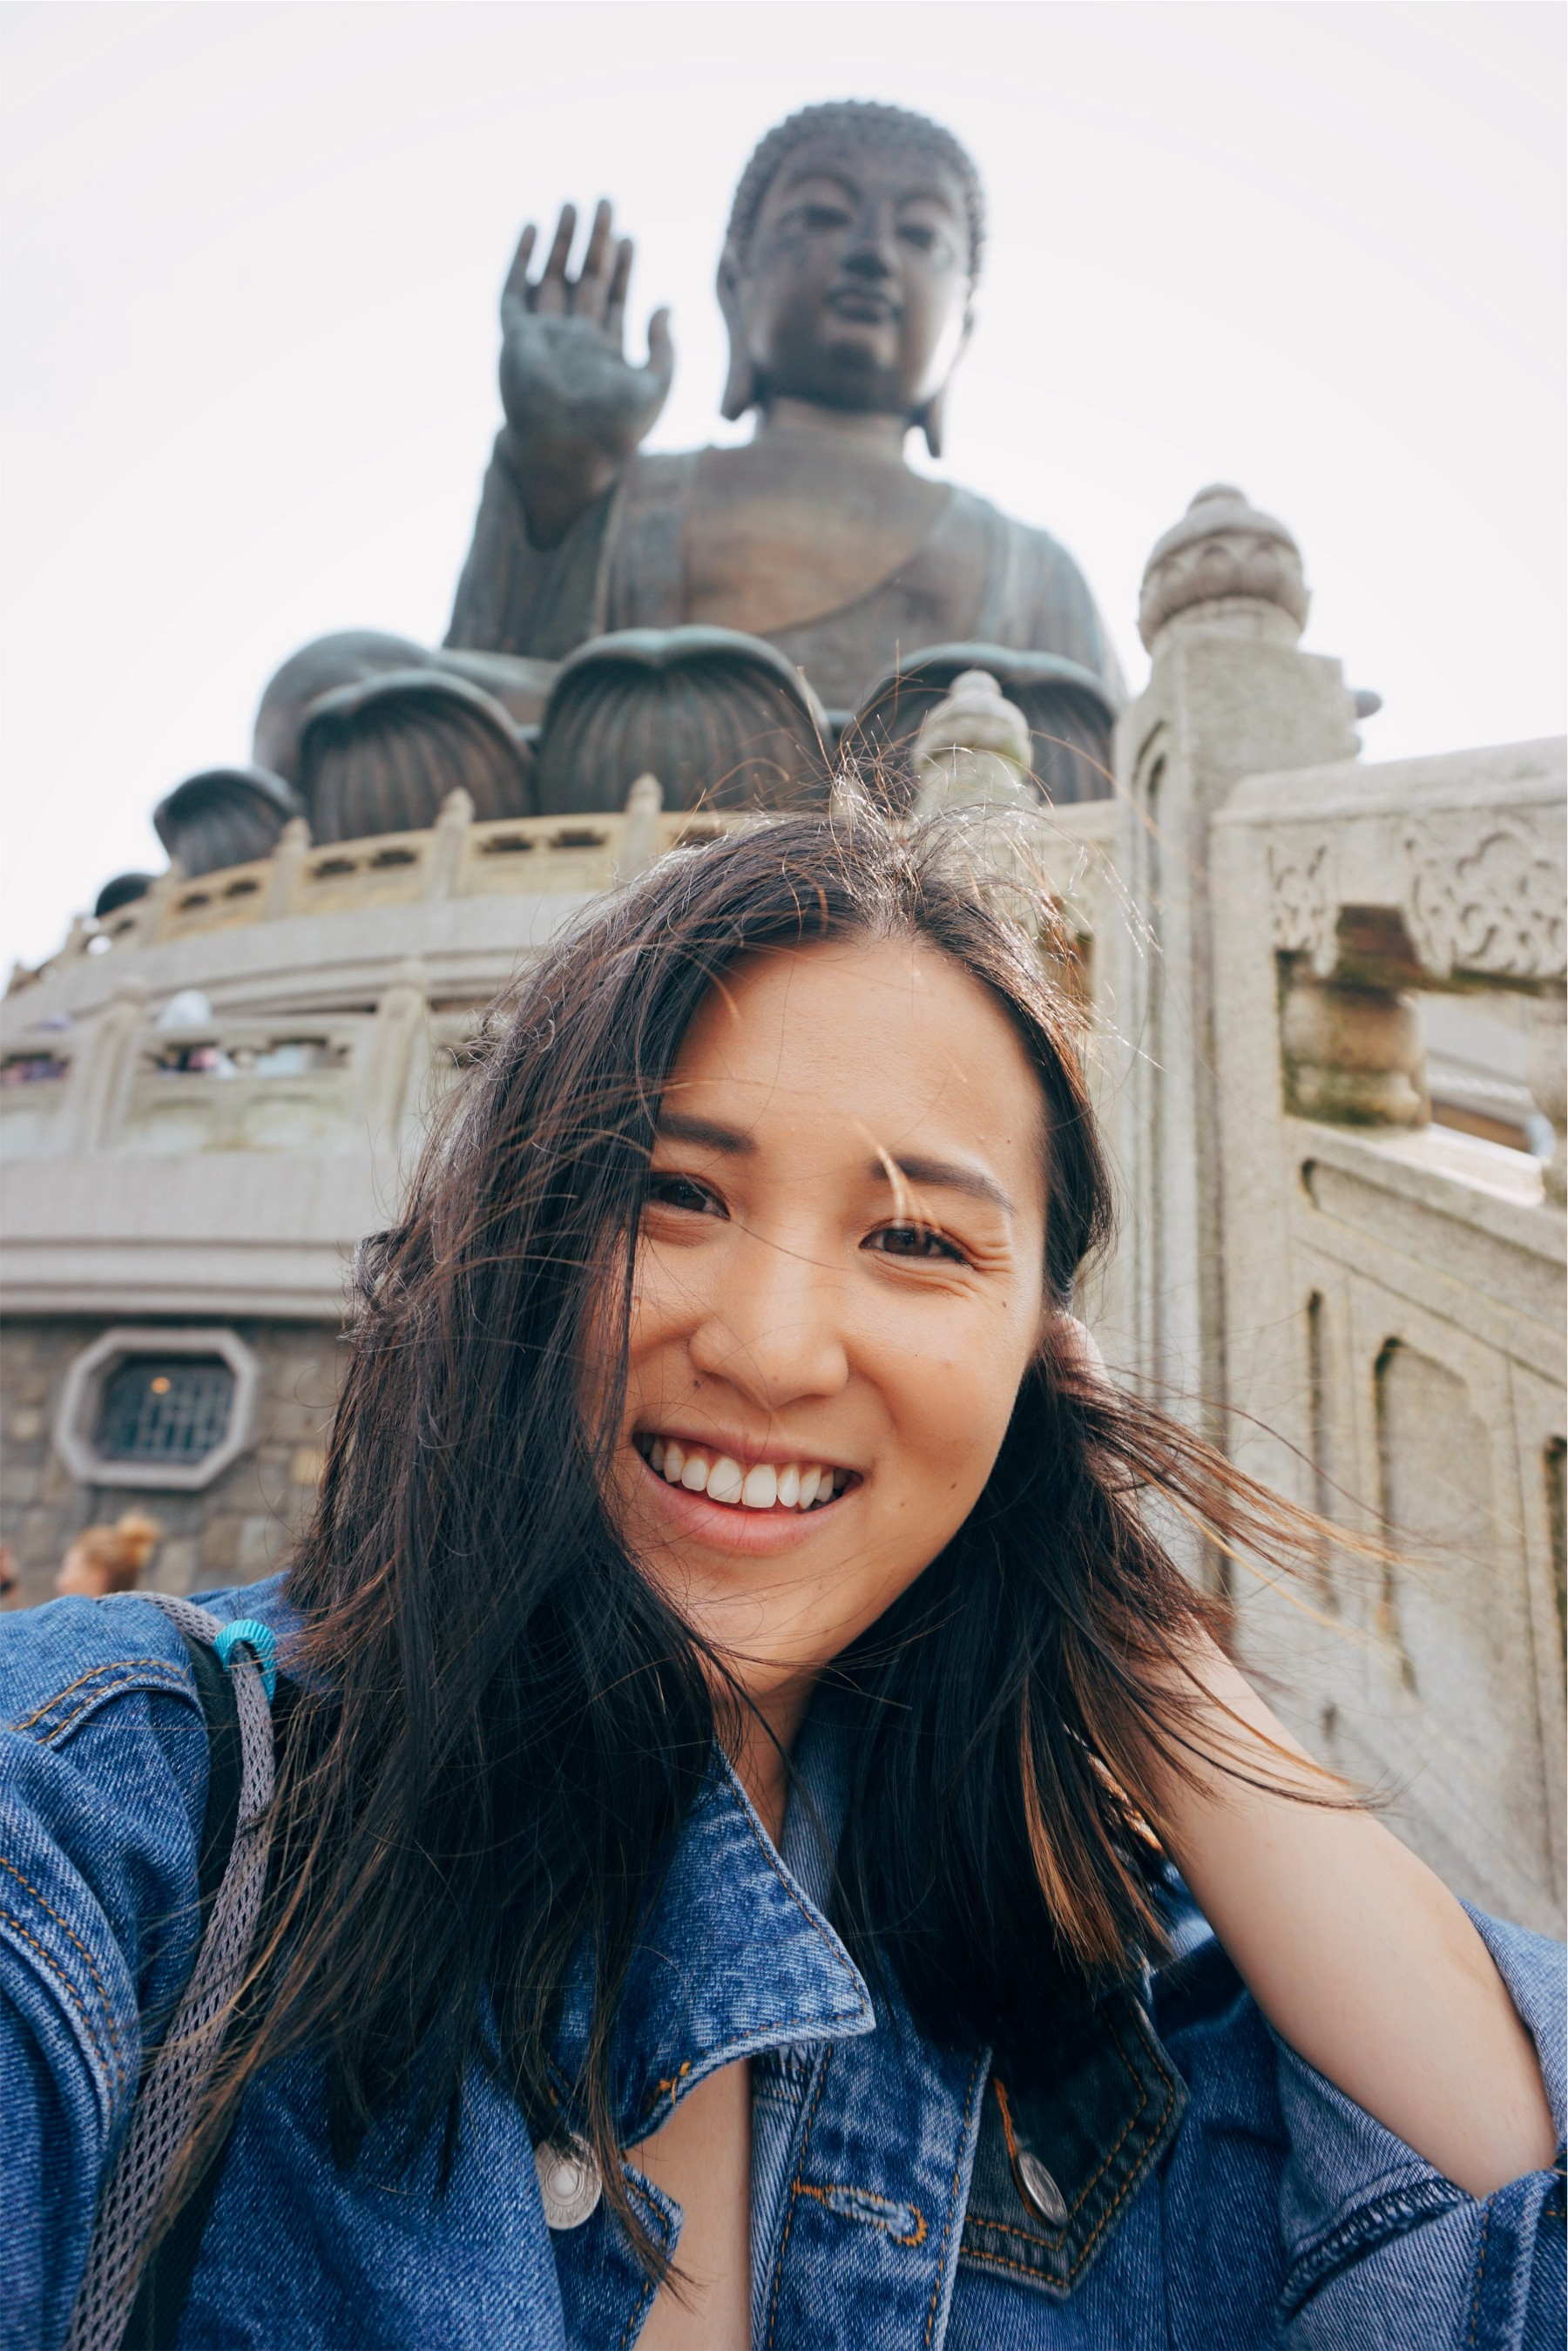 Hi, I'm Prita! - I am a developer + designer who seeks pixel-perfection and gets a thrill out of hexadecimal color values. I graduated from UC San Diego in 2014 with a double major in Computer Science and and Interdisciplinary Computing Arts. In my free time, you can find me rock climbing, gettin' down on the dance floor, or watching cartoons. I am obsessed with my dog Lily, and here is proof.Thank you so much for stopping by my website. Don't forget to say hello!